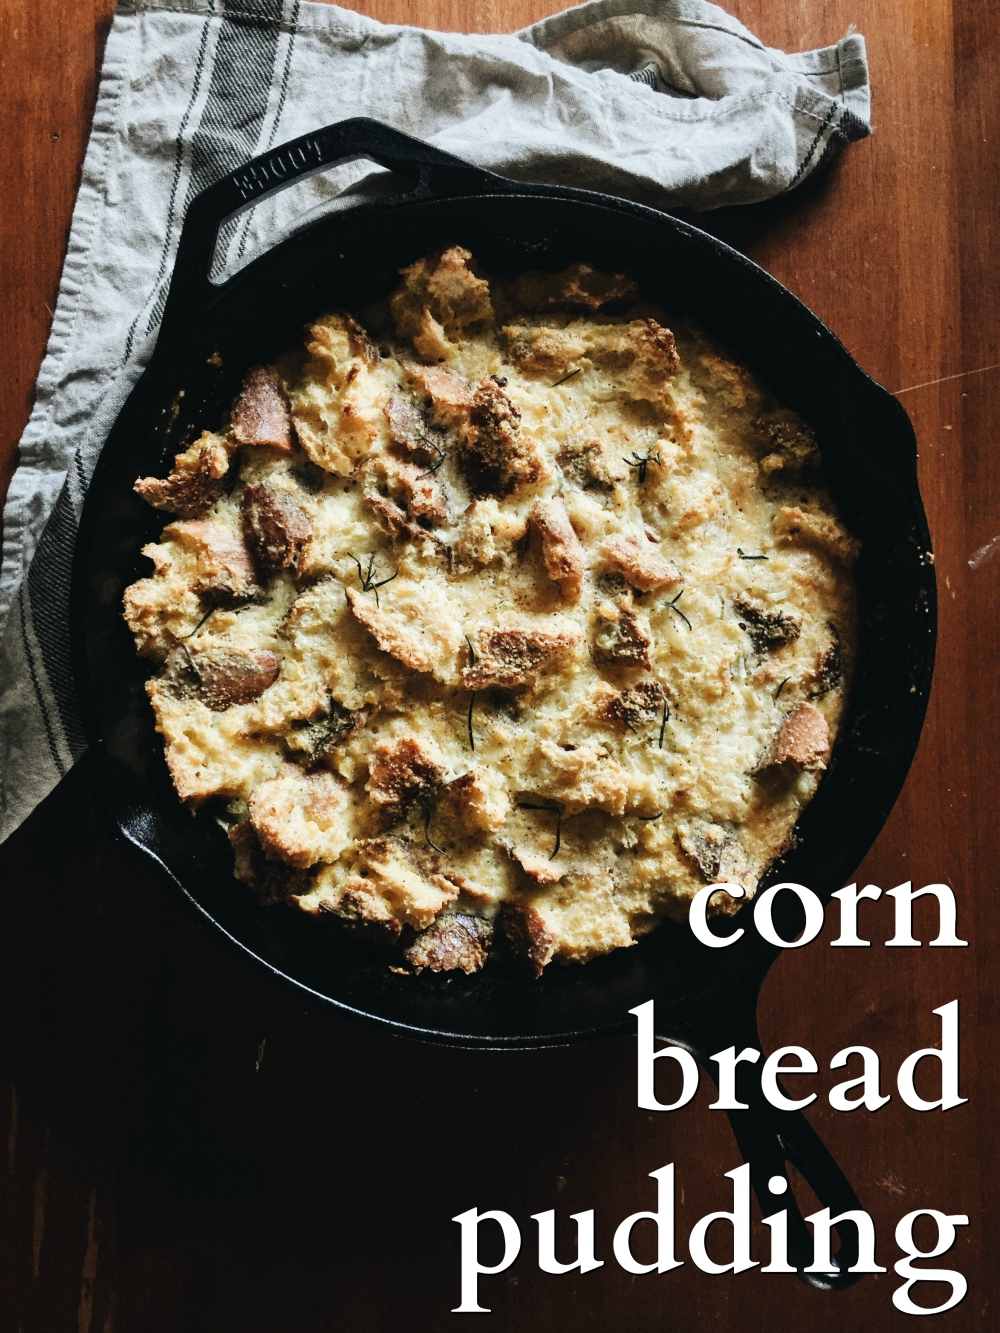 corn bread pudding recipe. an easy & delicious holiday side!